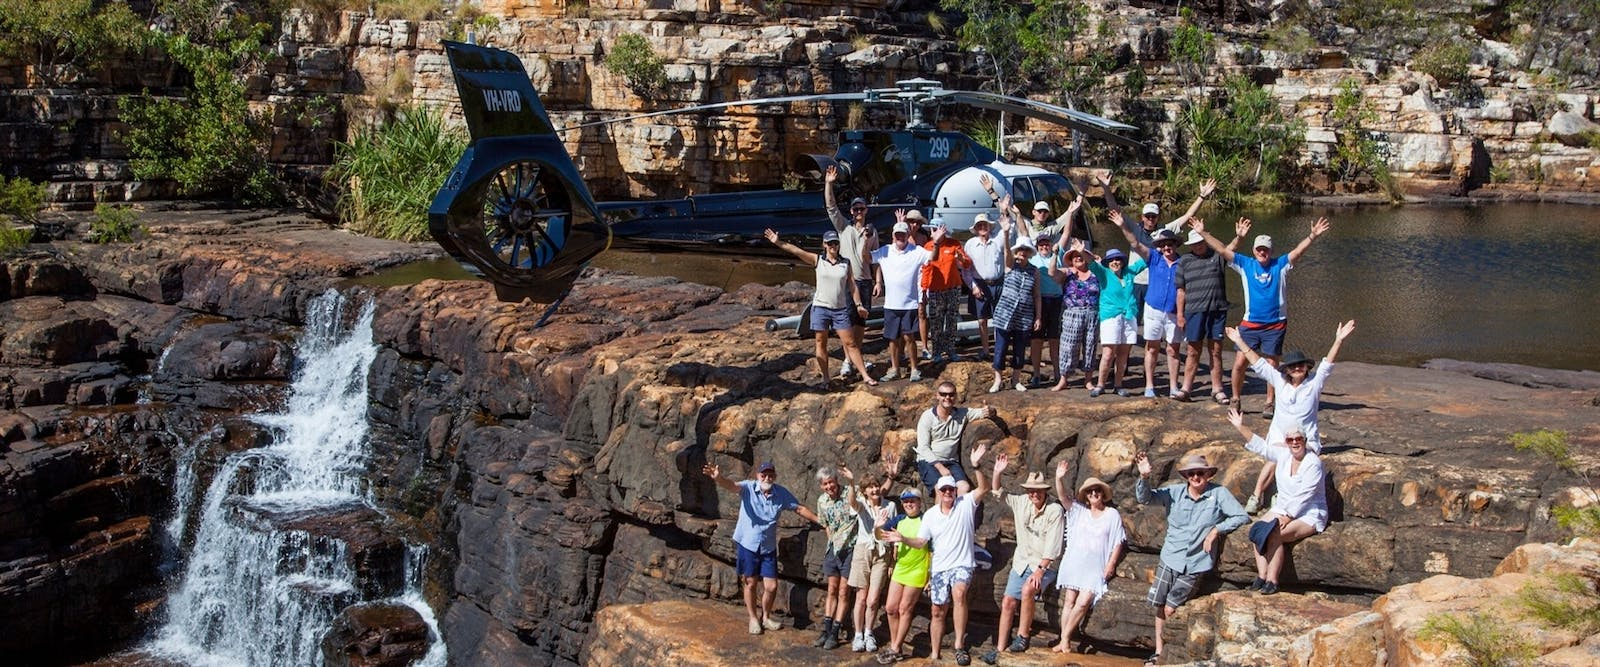 Helicopter to Eagle Falls, True North Cruise, The Kimberley